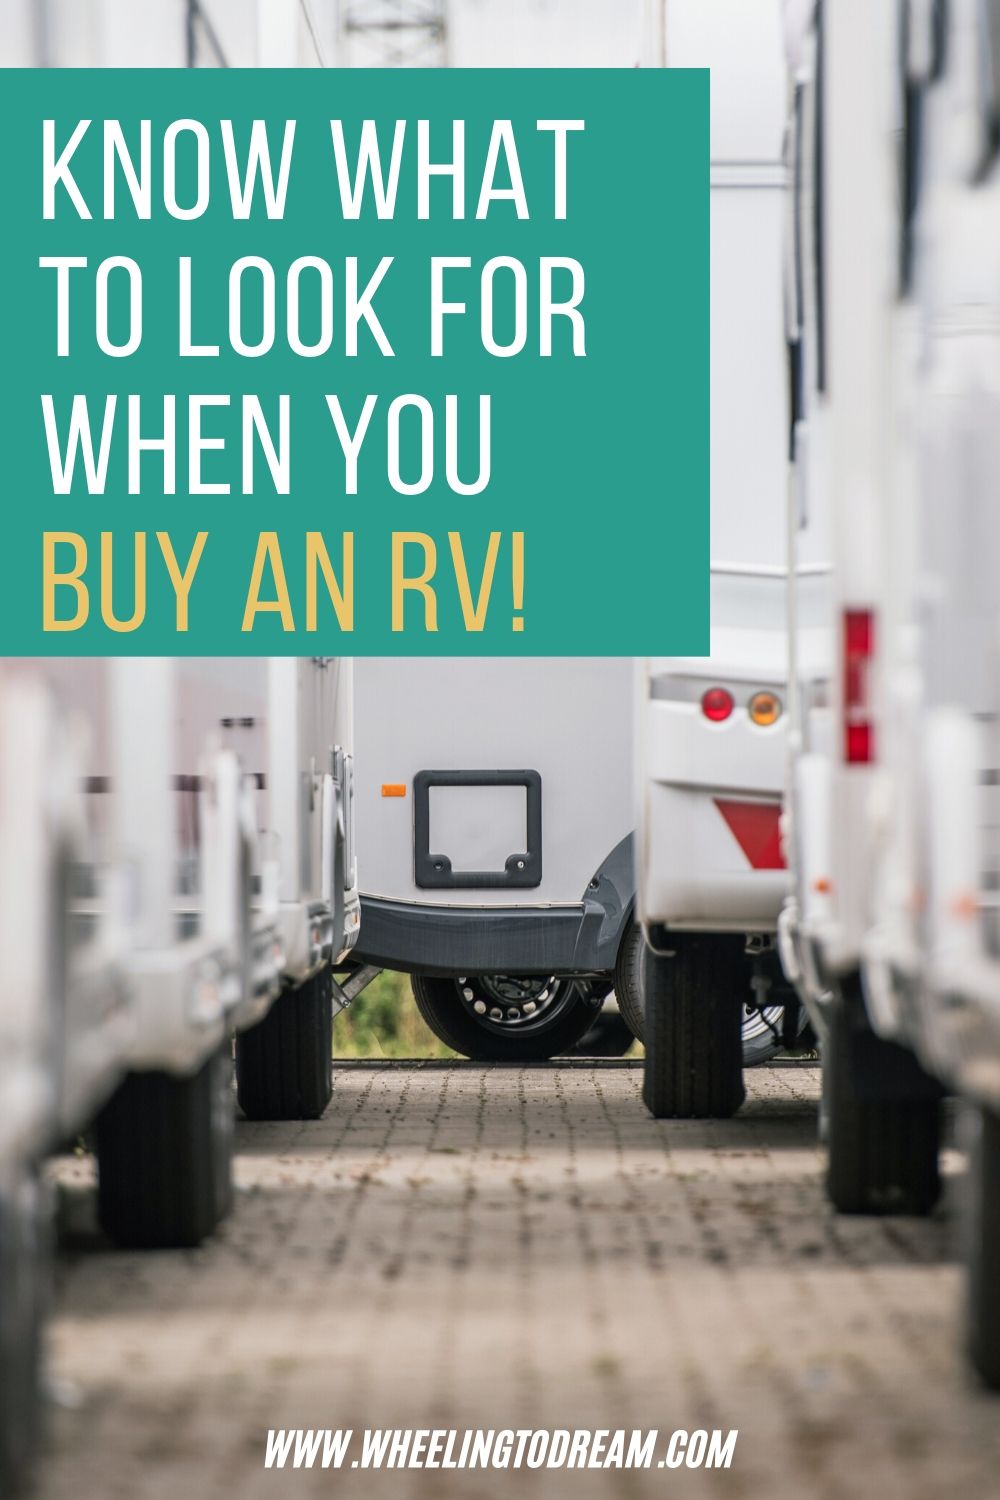 Are you buying an RV? I wish I would have known this sooner. Here are the best tips for buying an RV. We even talk about tips for buying a used RV. Don't go in blind. Learn how to negotiate not only on the sticker price but the interest rate. Know what to expect when shopping for an RV.#rvliving #rvlifestyle #rvlivingwithkids#buyinganrv